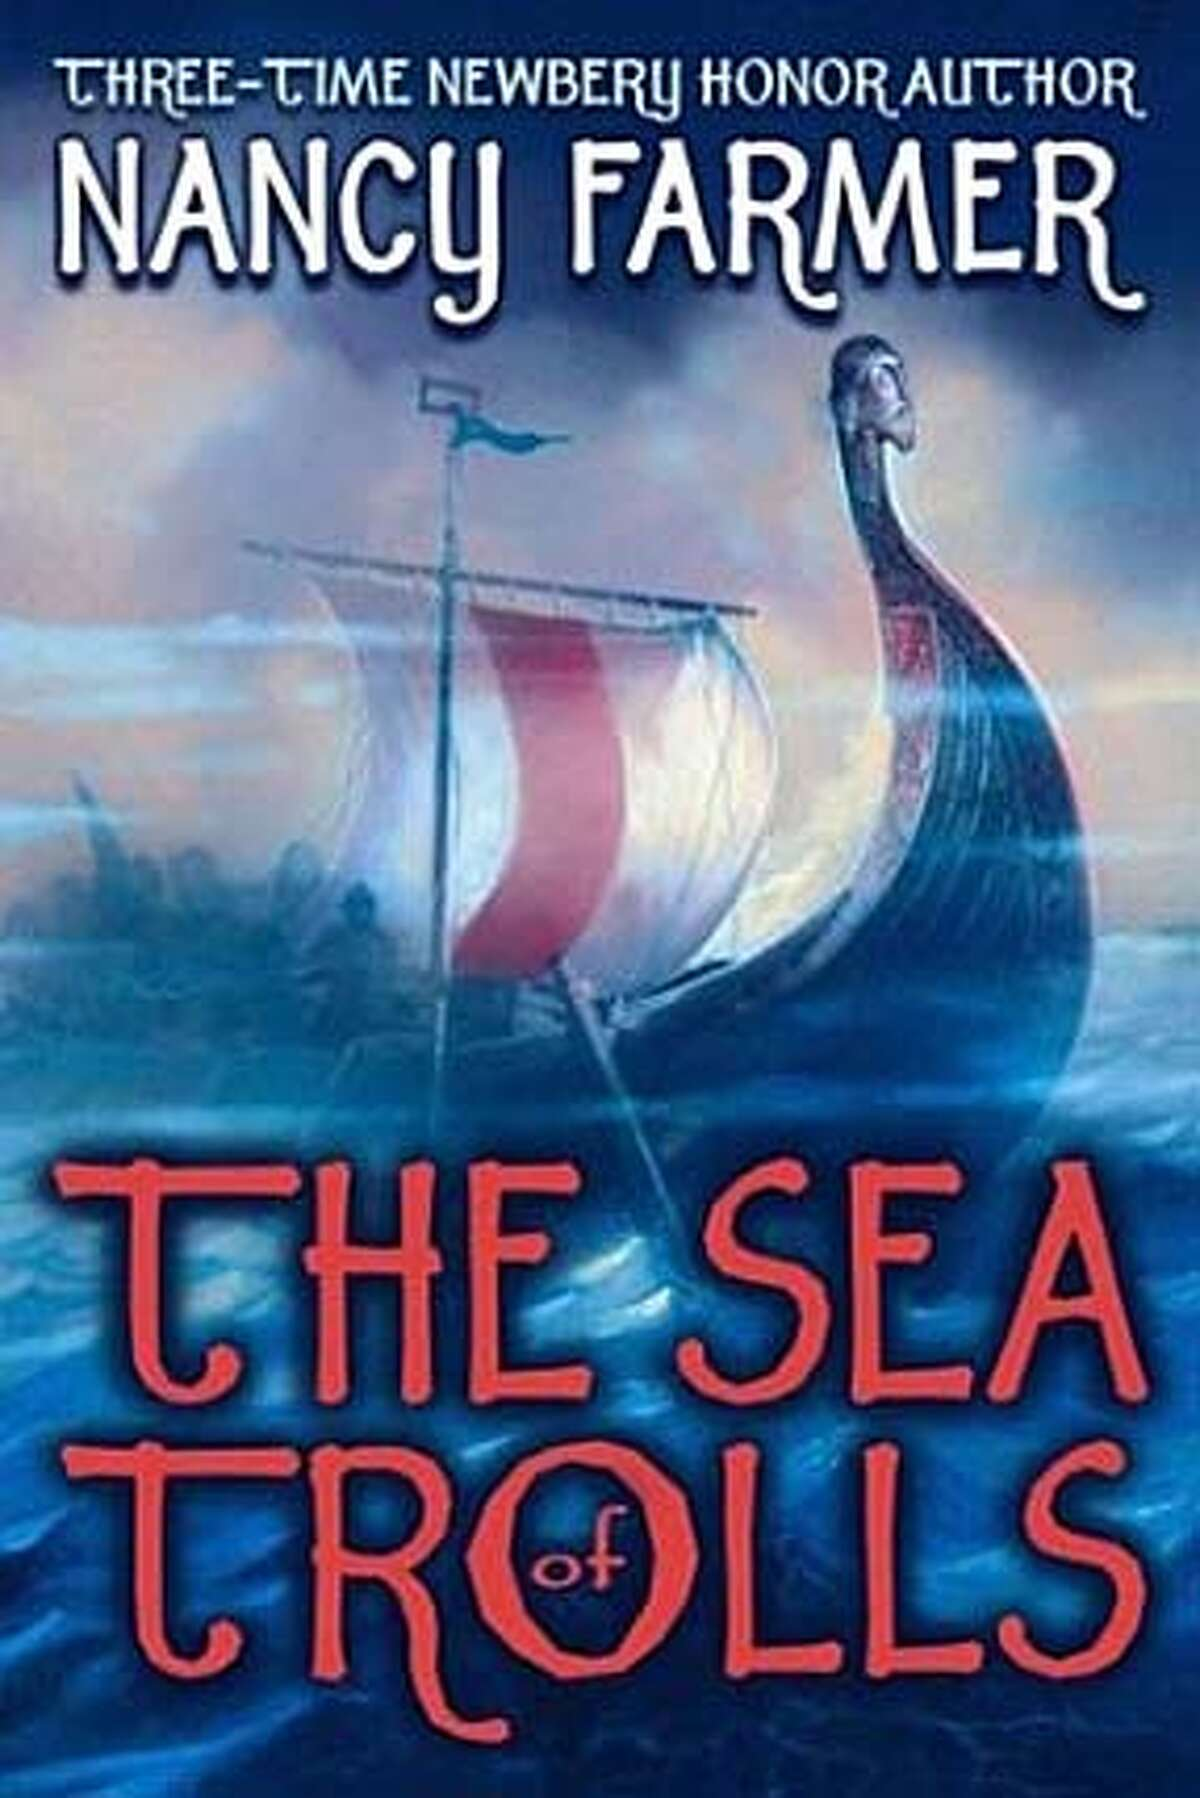 Book cover art for The Sea of Trolls.